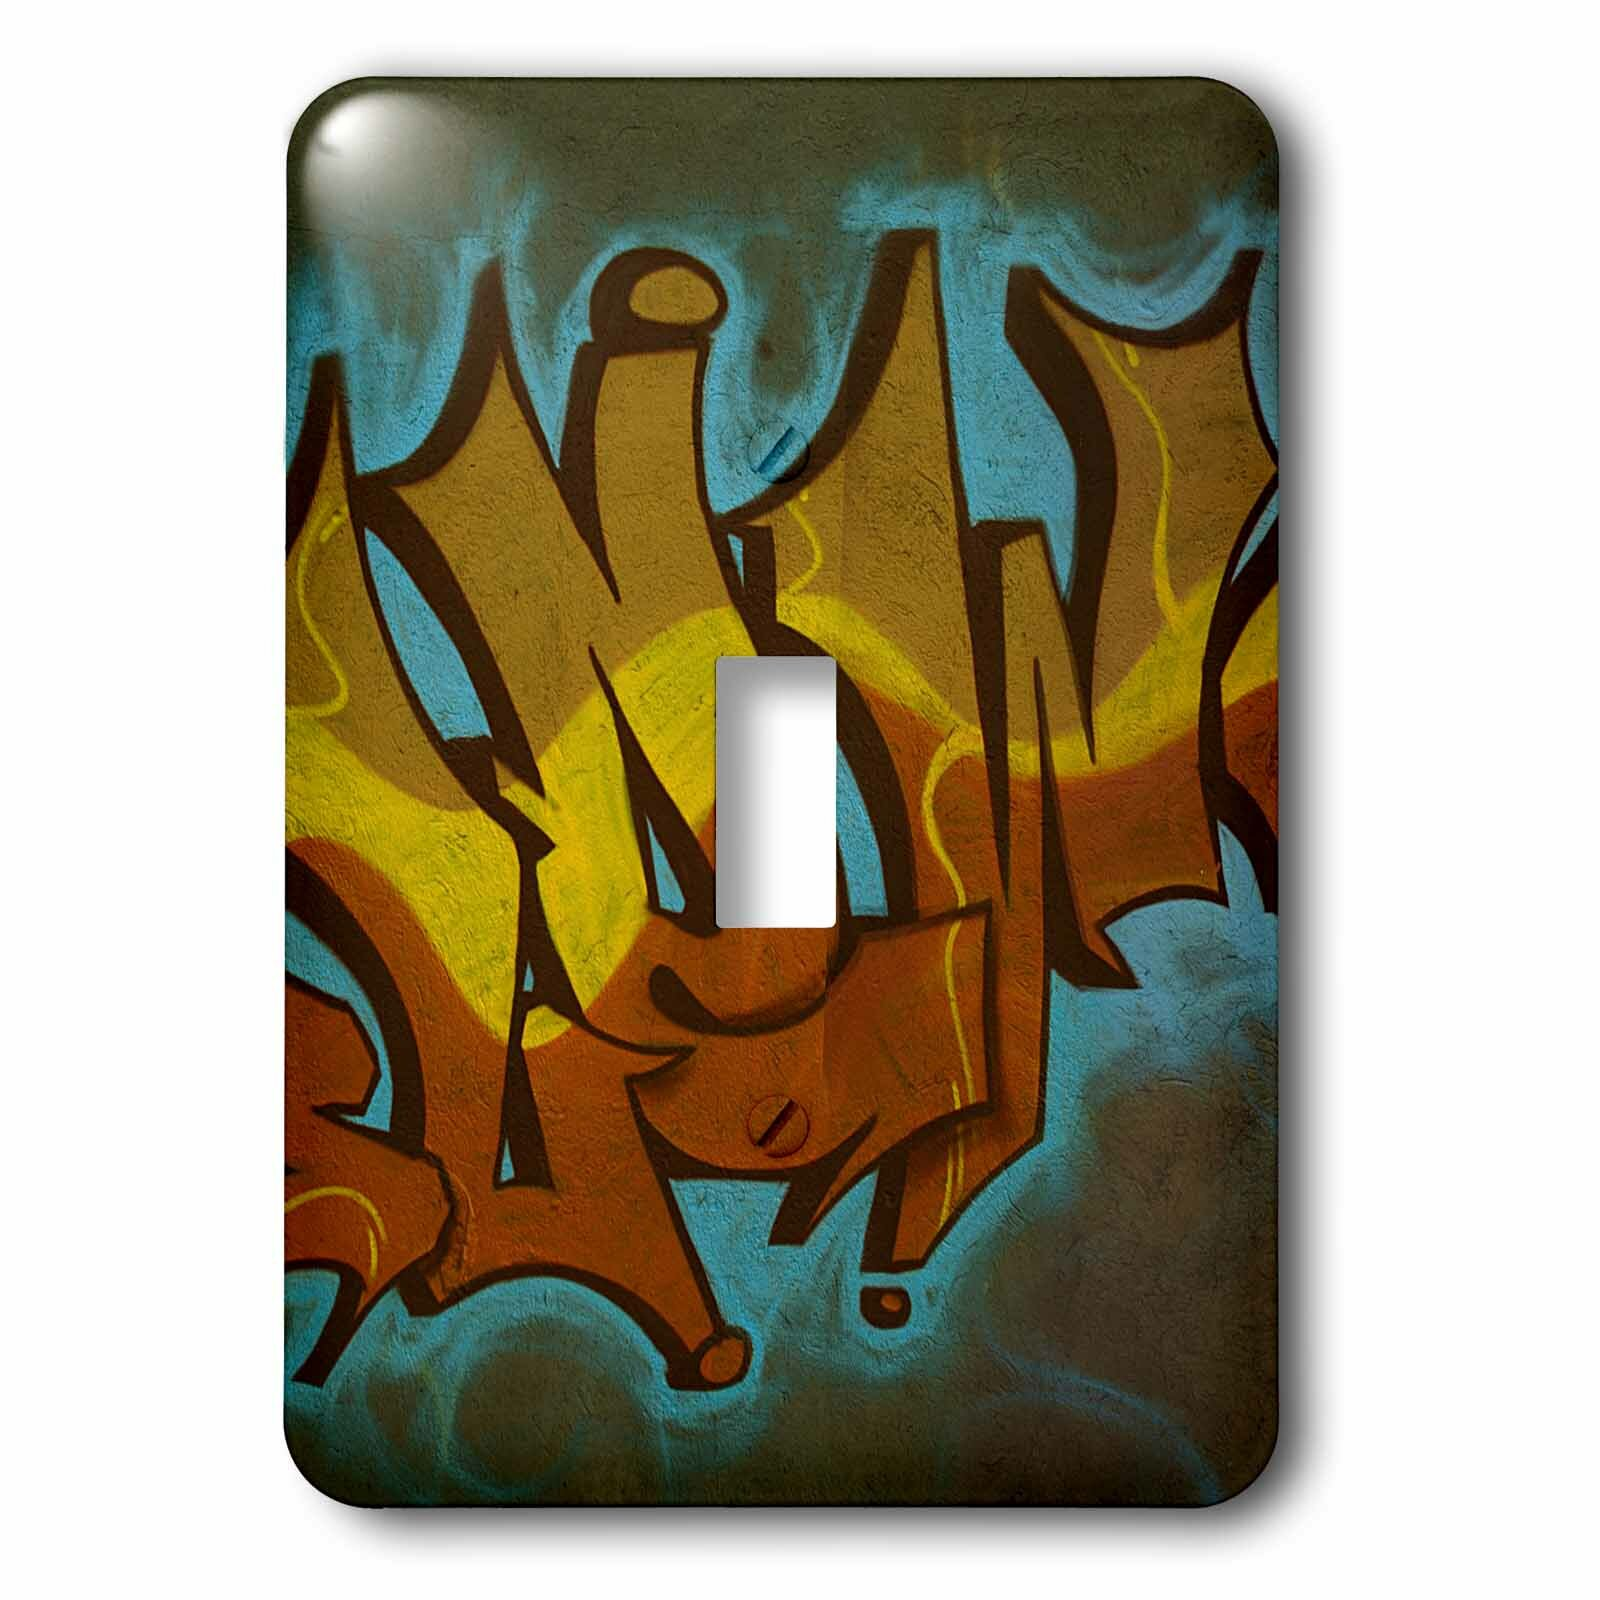 3drose Part Of Graffiti 1 Gang Toggle Light Switch Wall Plate Wayfair